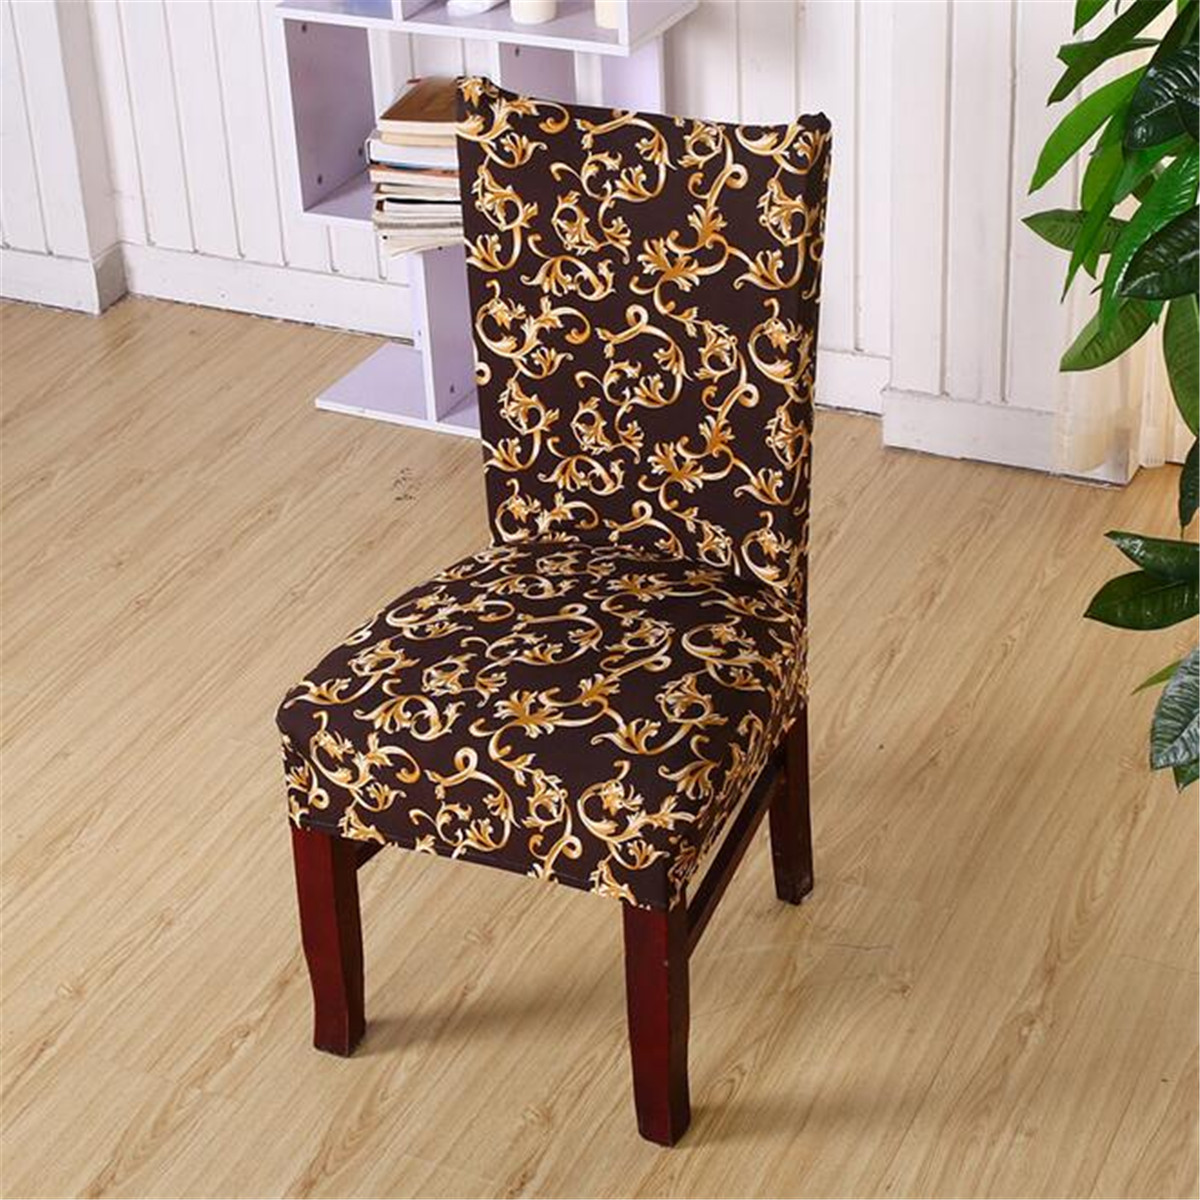 How To Make Dining Room Chair Covers Chair Covers Soft Spandex Fit Stretch Short Dining Room Chair Covers With Printed Pattern Banquet Chair Seat Protector Slipcover For Hone Party Hotel